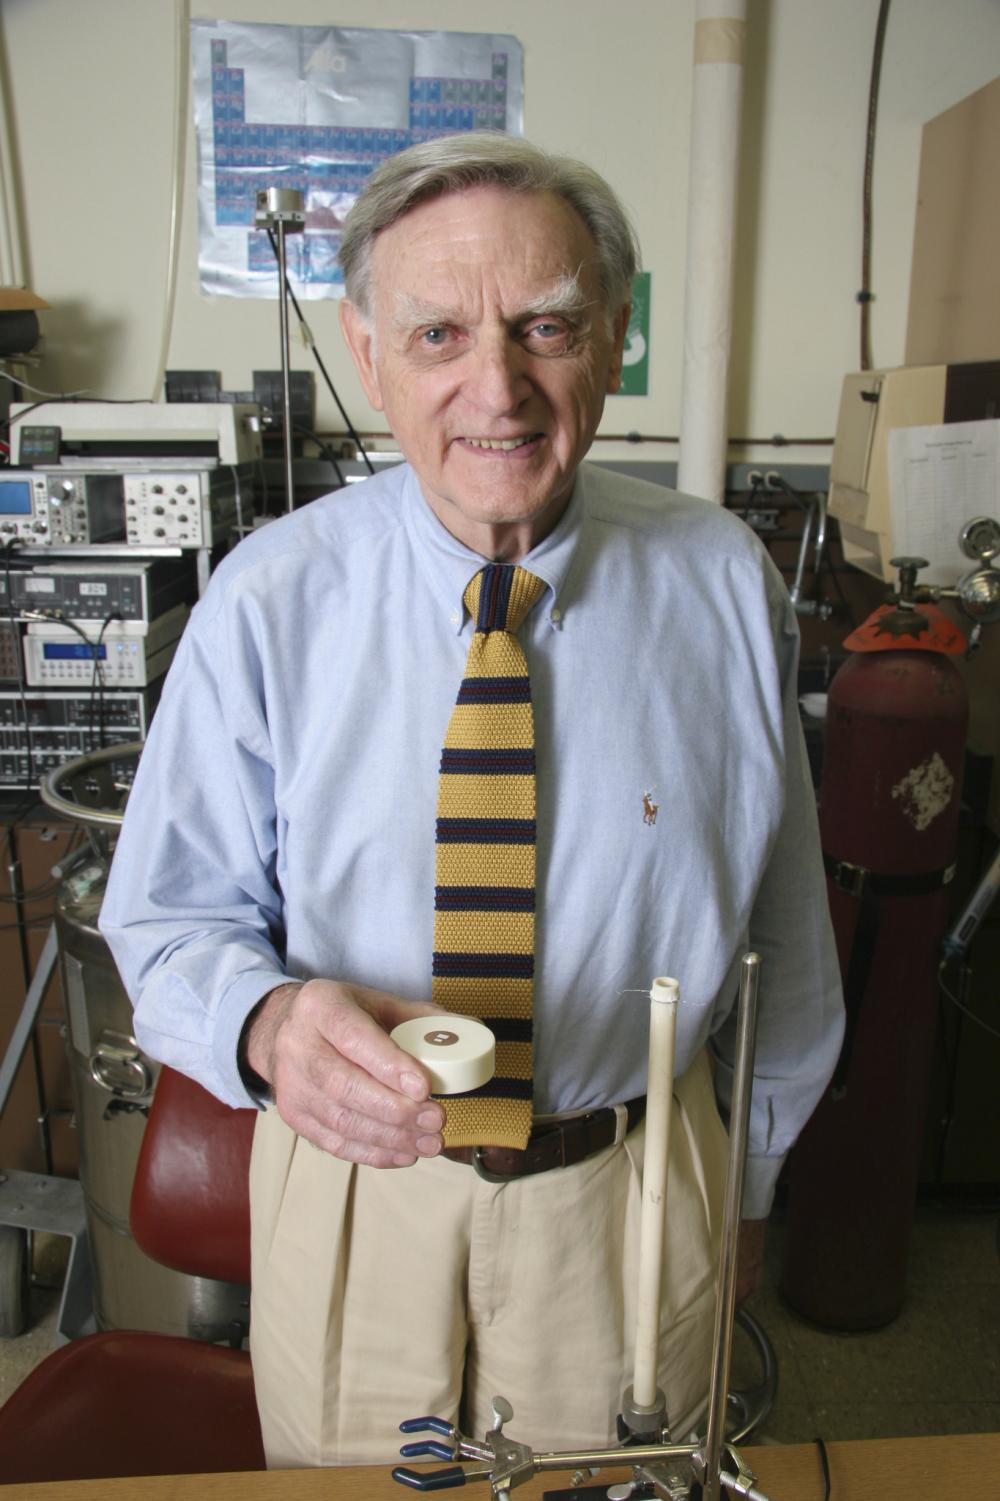 Professor John B. Goodenough displays an experiment. The professor has been working at the University of Texas at Austin since 1986. Photo courtesy of the University of Texas at Austin.